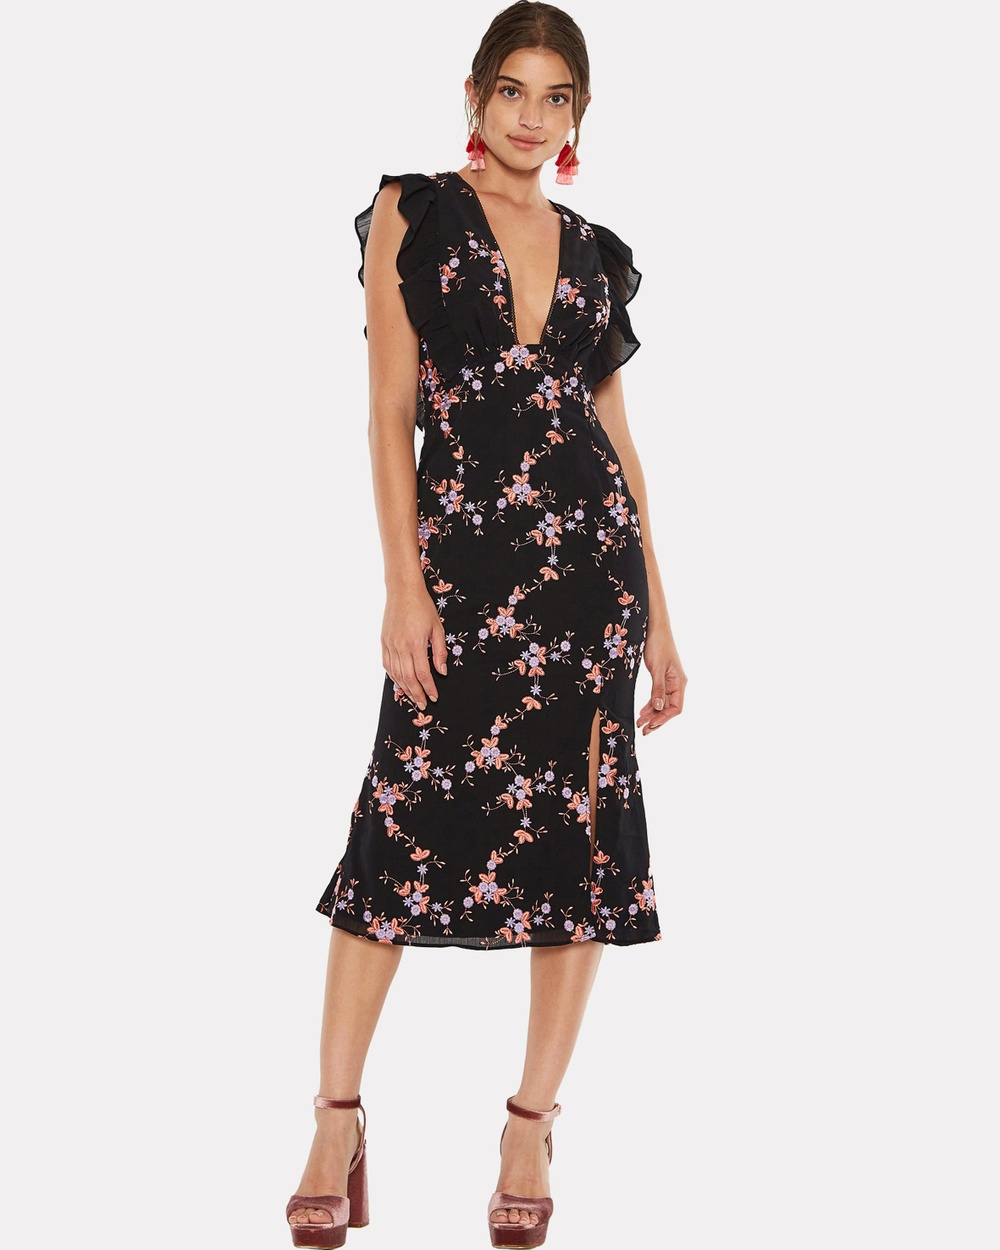 Talulah Seguro Midi Dress Dresses Black Multi Seguro Midi Dress